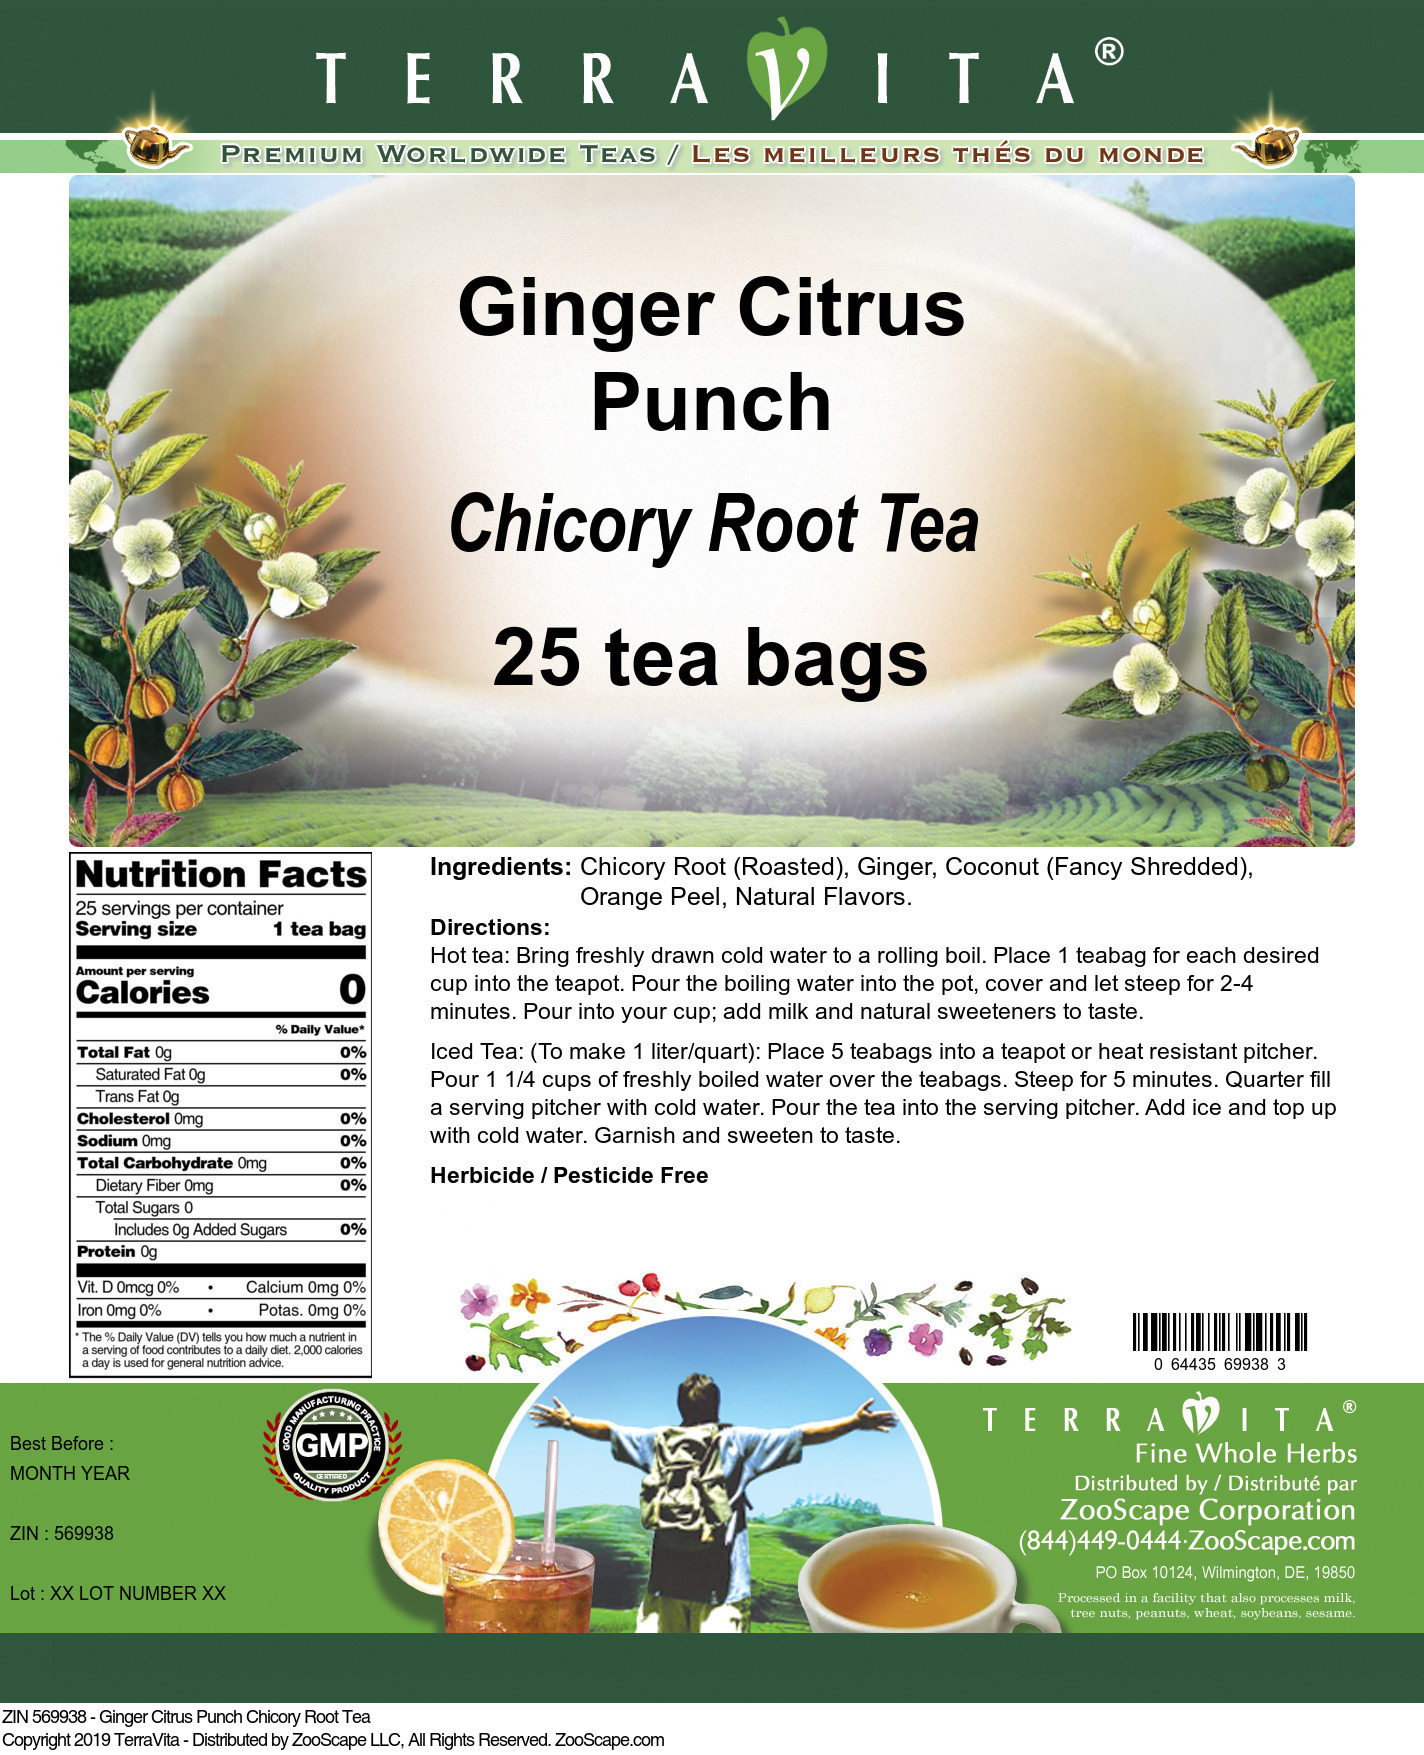 Ginger Citrus Punch Chicory Root